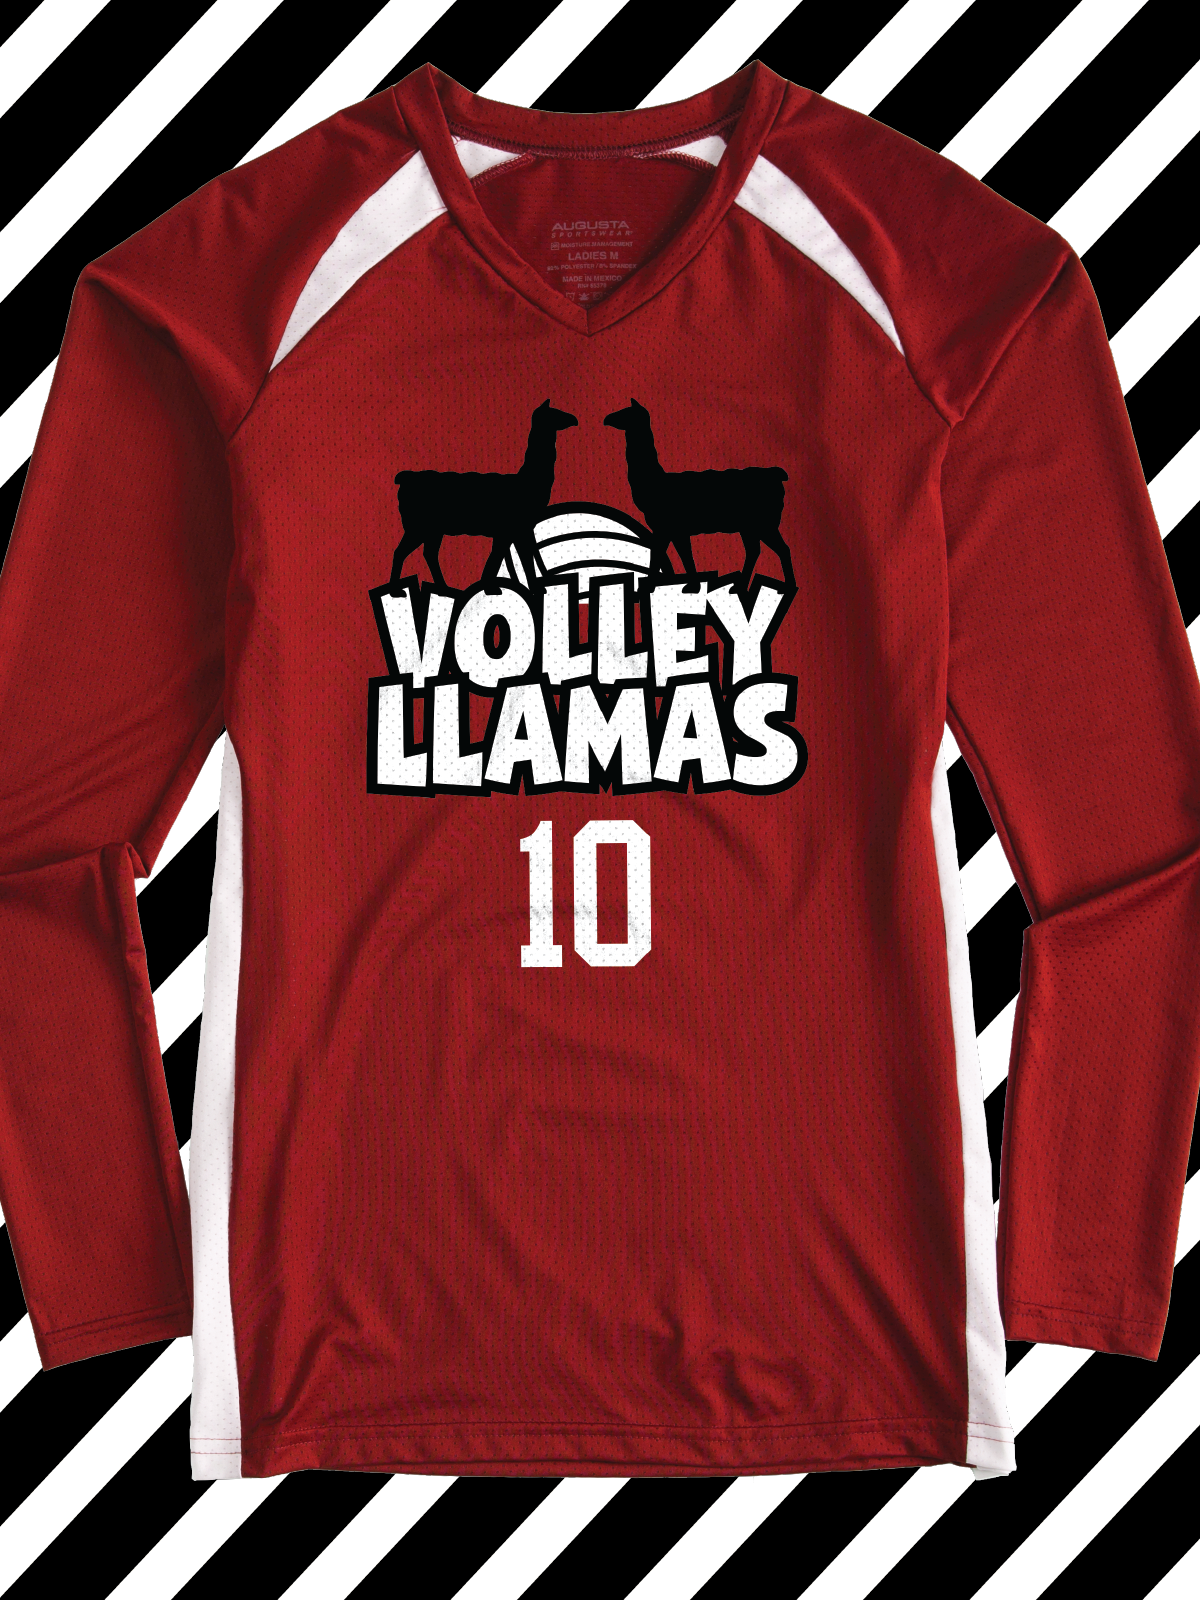 Volley Llamas Funny Design Idea For Custom Volleyball Jerseys Team Shirts League Shirts T Shirts Hoodies Bags W Team T Shirts Shirt Designs Team Shirts